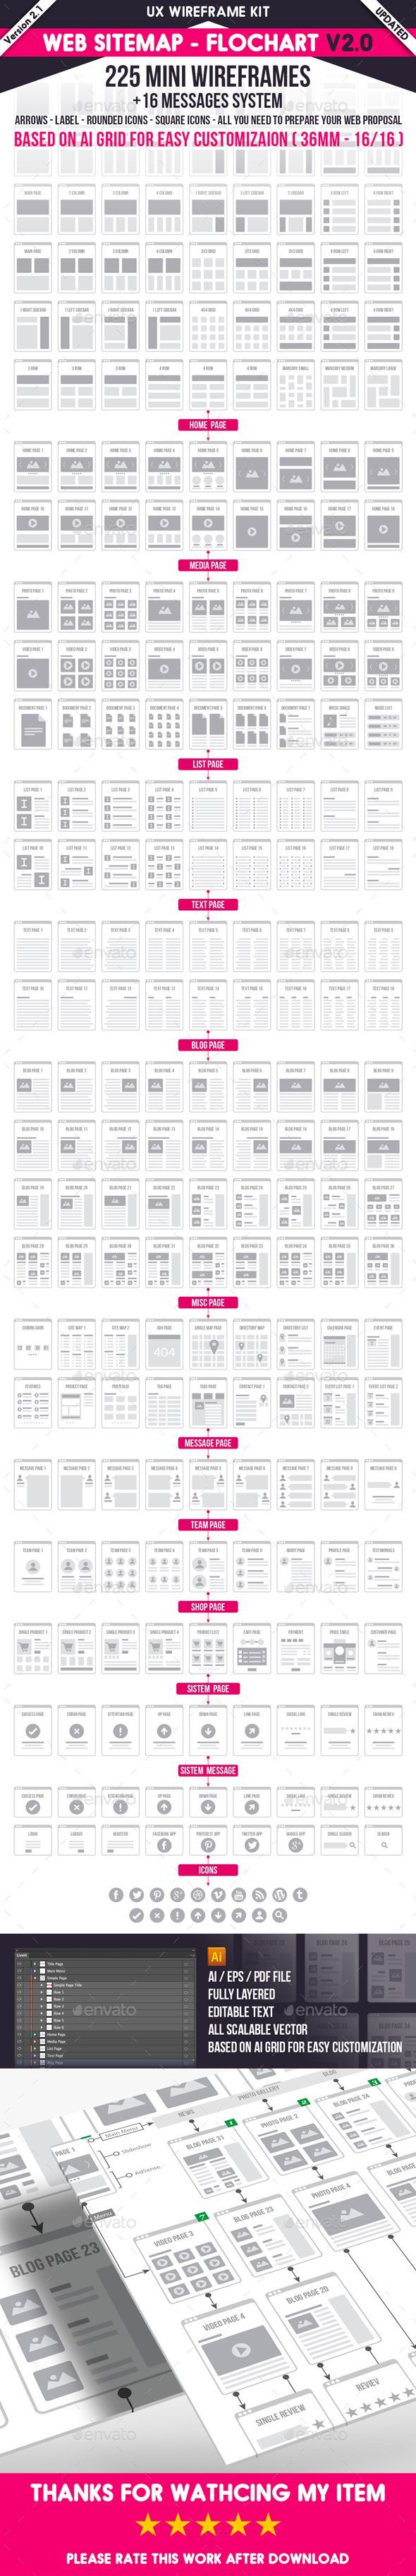 Web Sitemap - Flowcharts v2.0 (User Interfaces). If you like UX, design, or design thinking, check out theuxblog.com